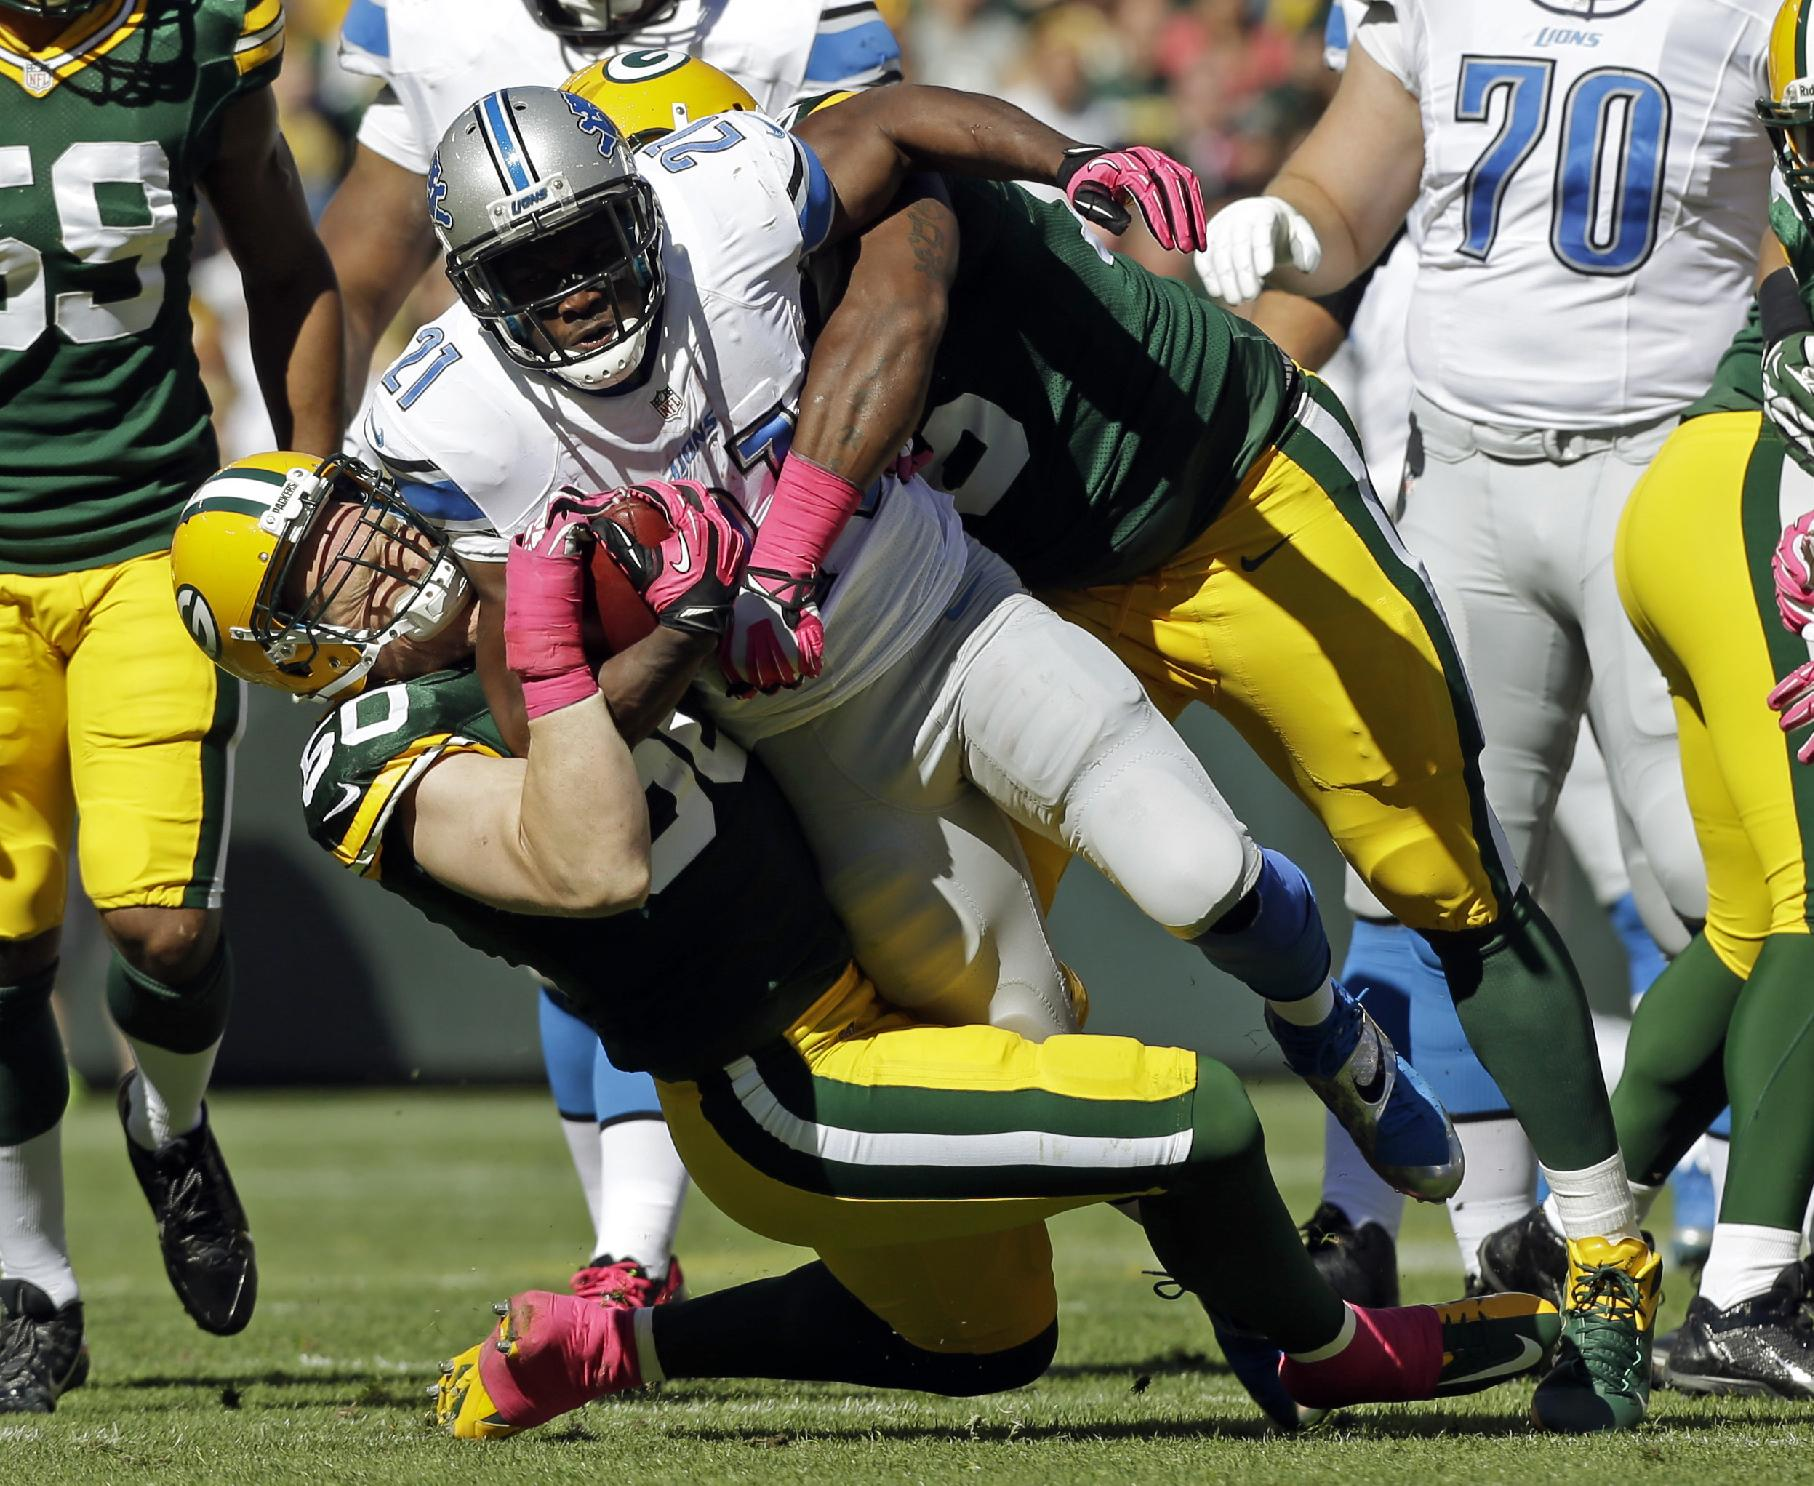 Green Bay Packers' Mike Daniels and A.J. Hawk (50) tackle Detroit Lions' Reggie Bush (21) during the first half of an NFL football game Sunday, Oct. 6, 2013, in Green Bay, Wis